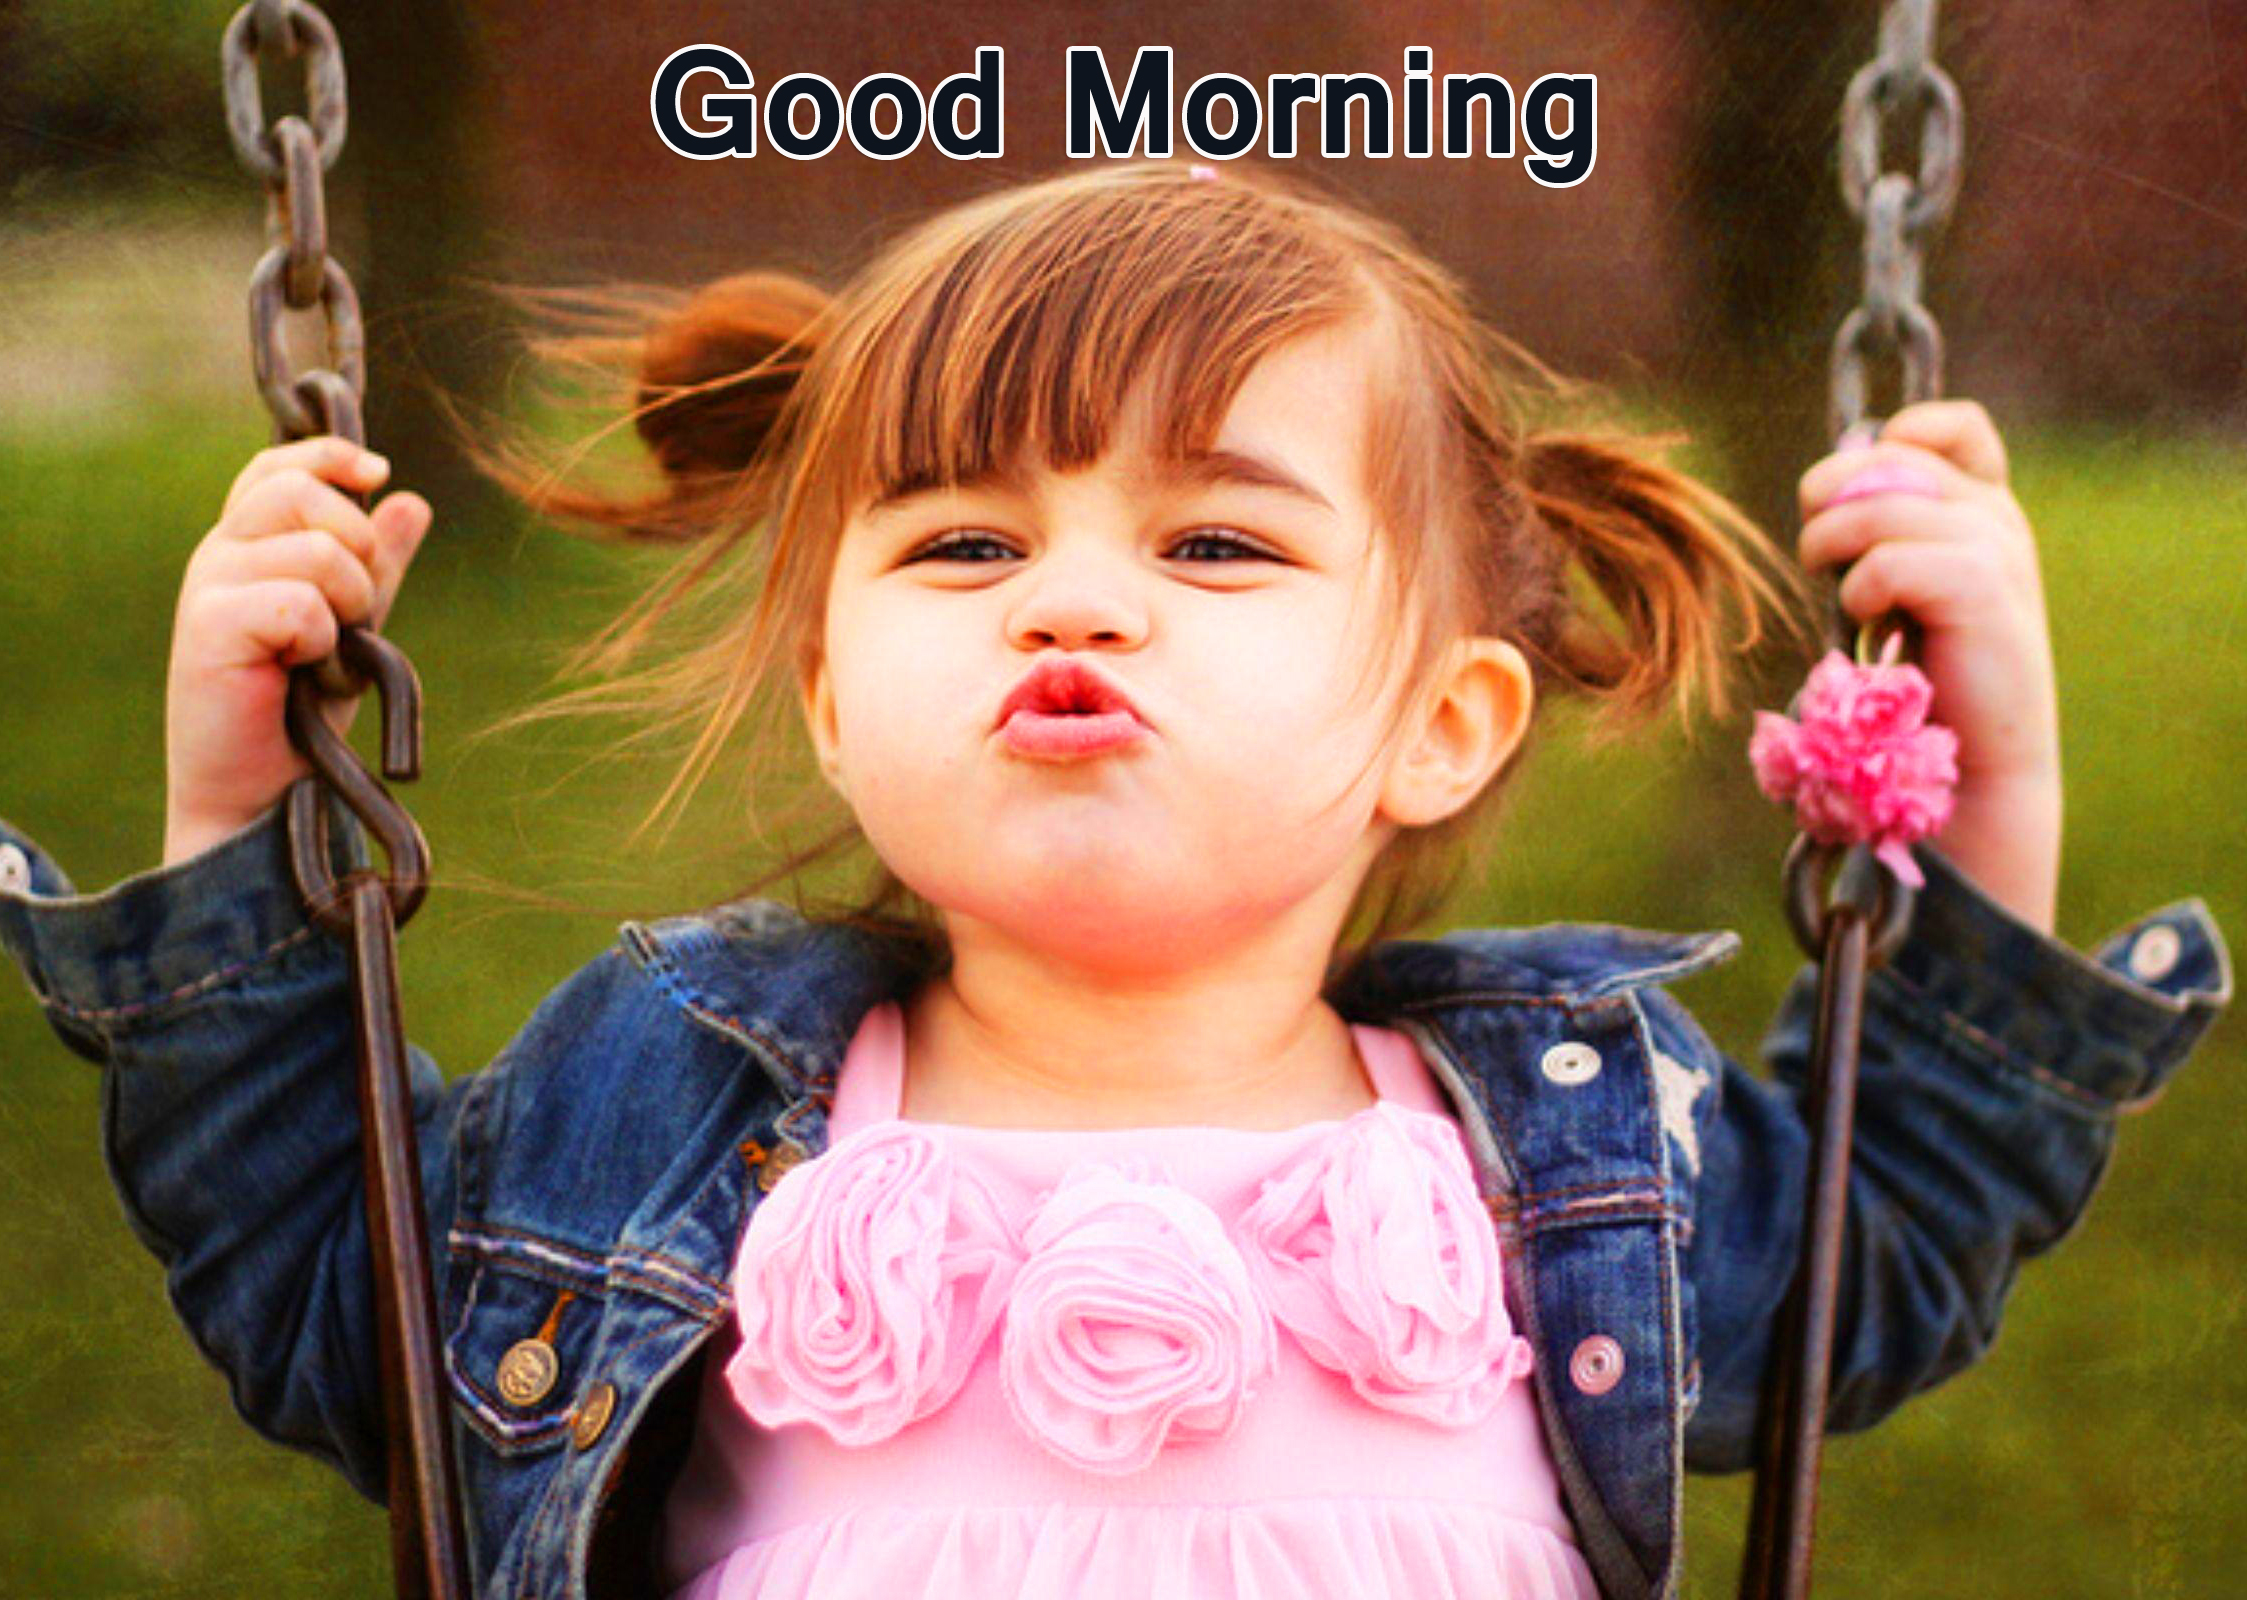 Cheerful Kid Good Morning Picture